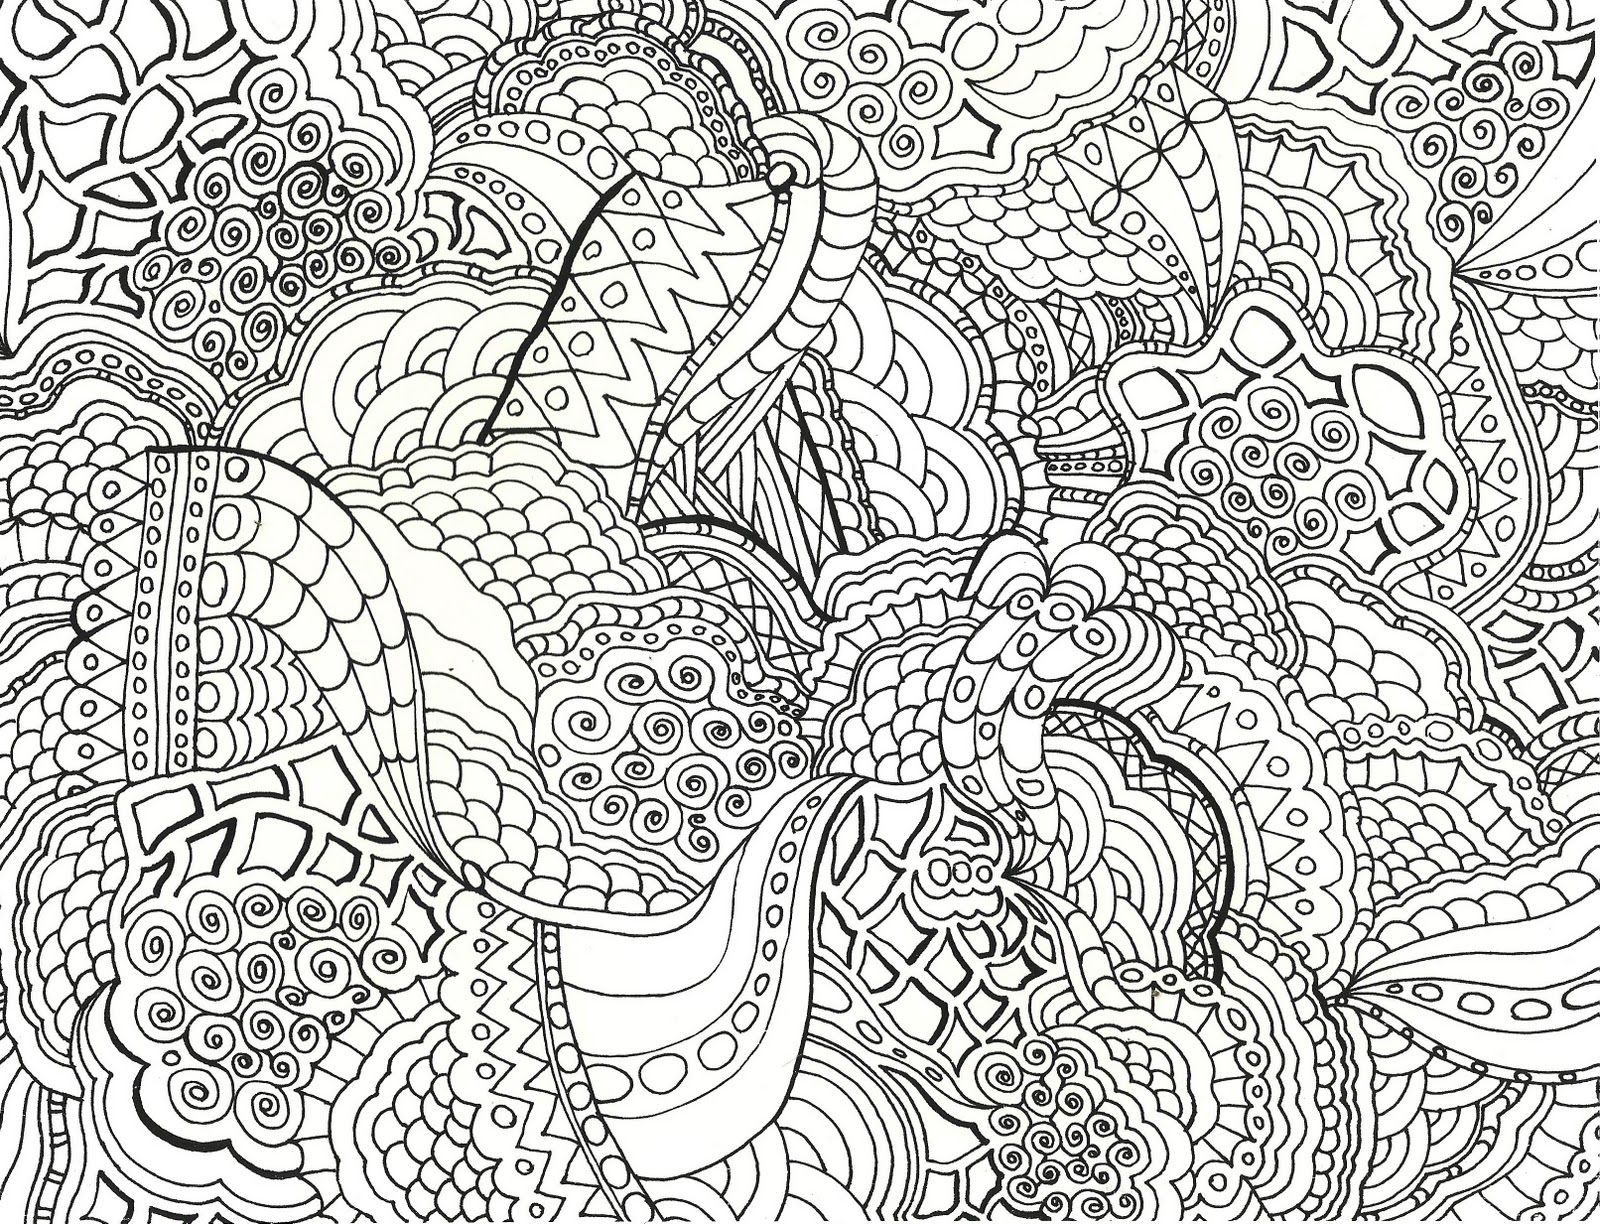 Coloring pages to print designs - Adults Abstract Printable Free Coloring Pages Printable And Coloring Book To Print For Free Find More Coloring Pages Online For Kids And Adults Of Adults